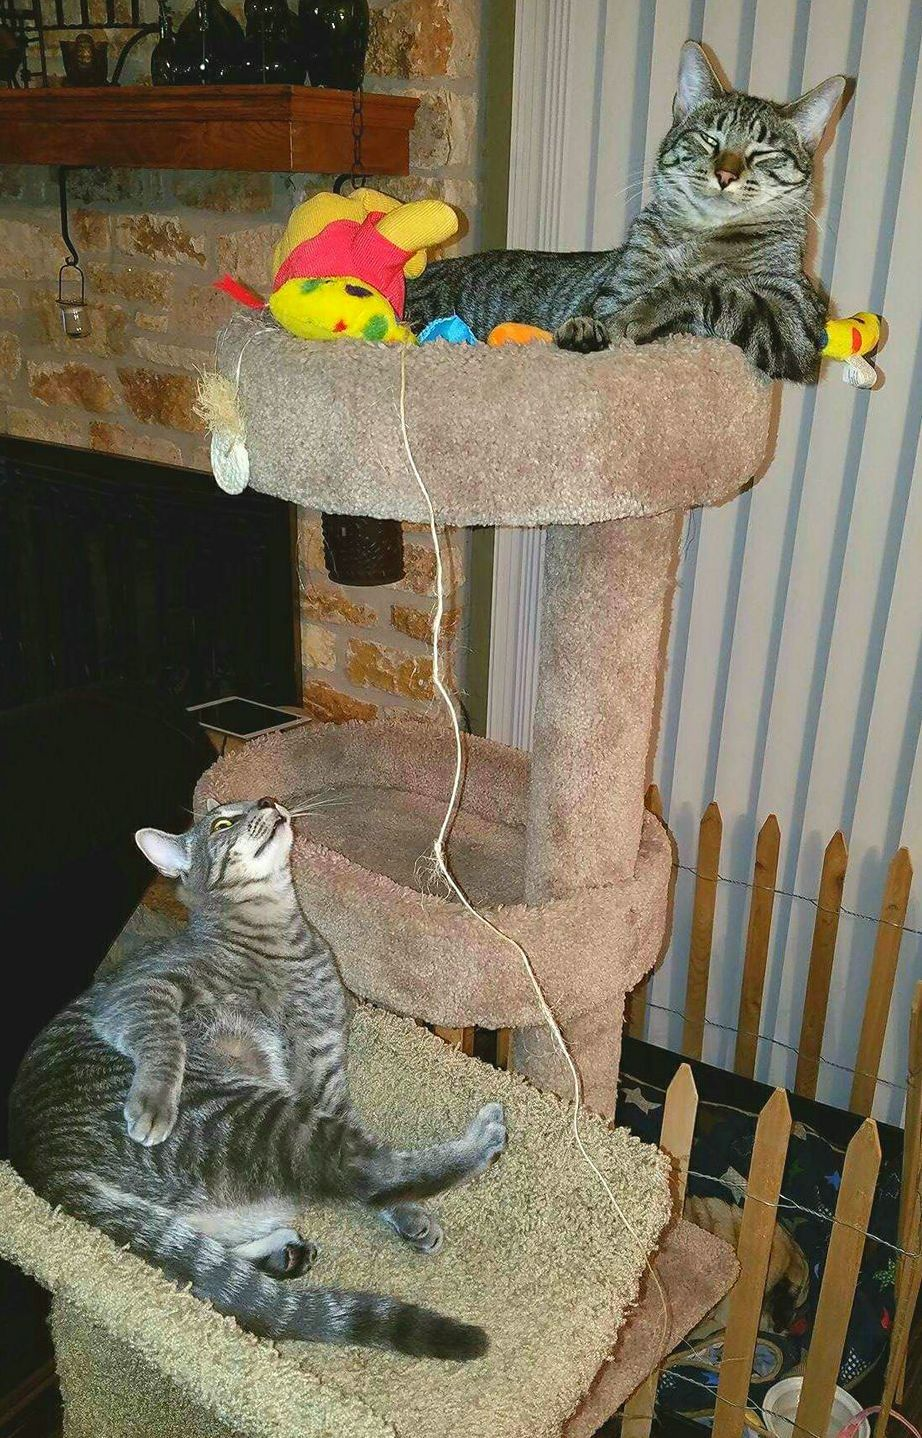 Big brother has all the toys - http://cutecatshq.com/cats/big-brother-has-all-the-toys/